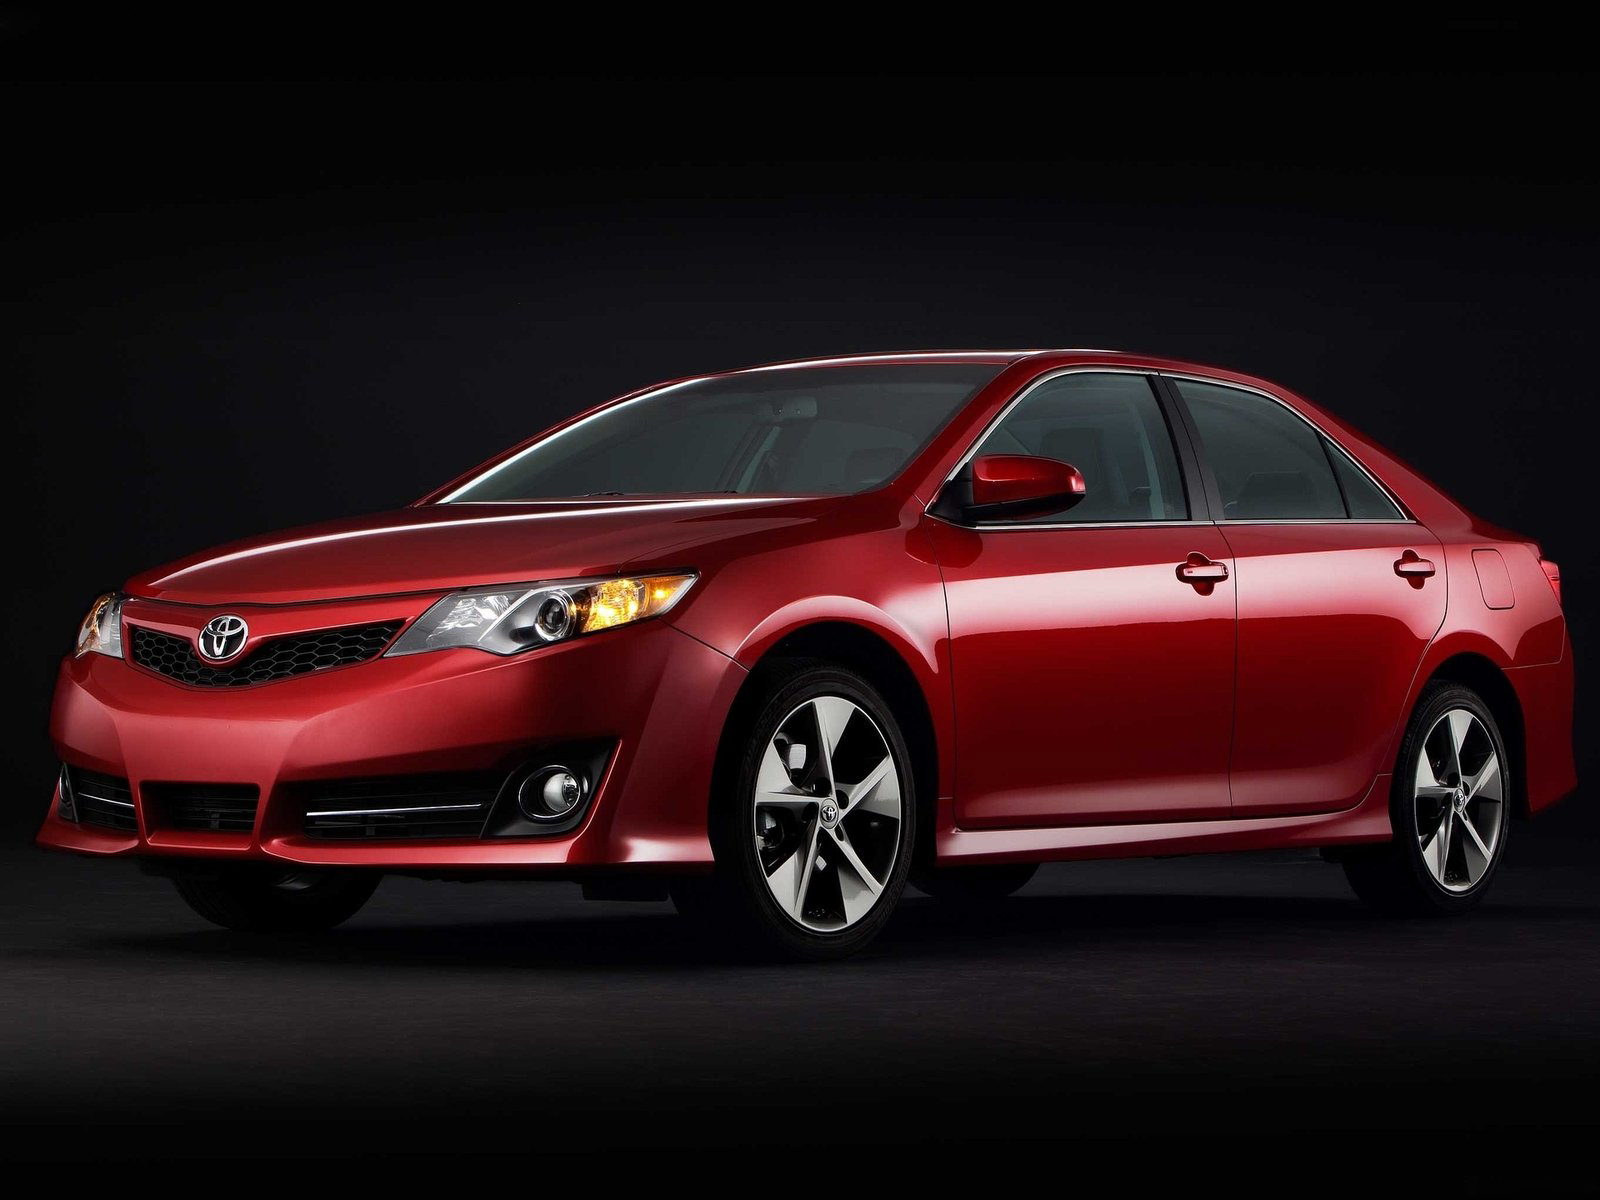 Toyota Camry 2012 Wallpapers HD